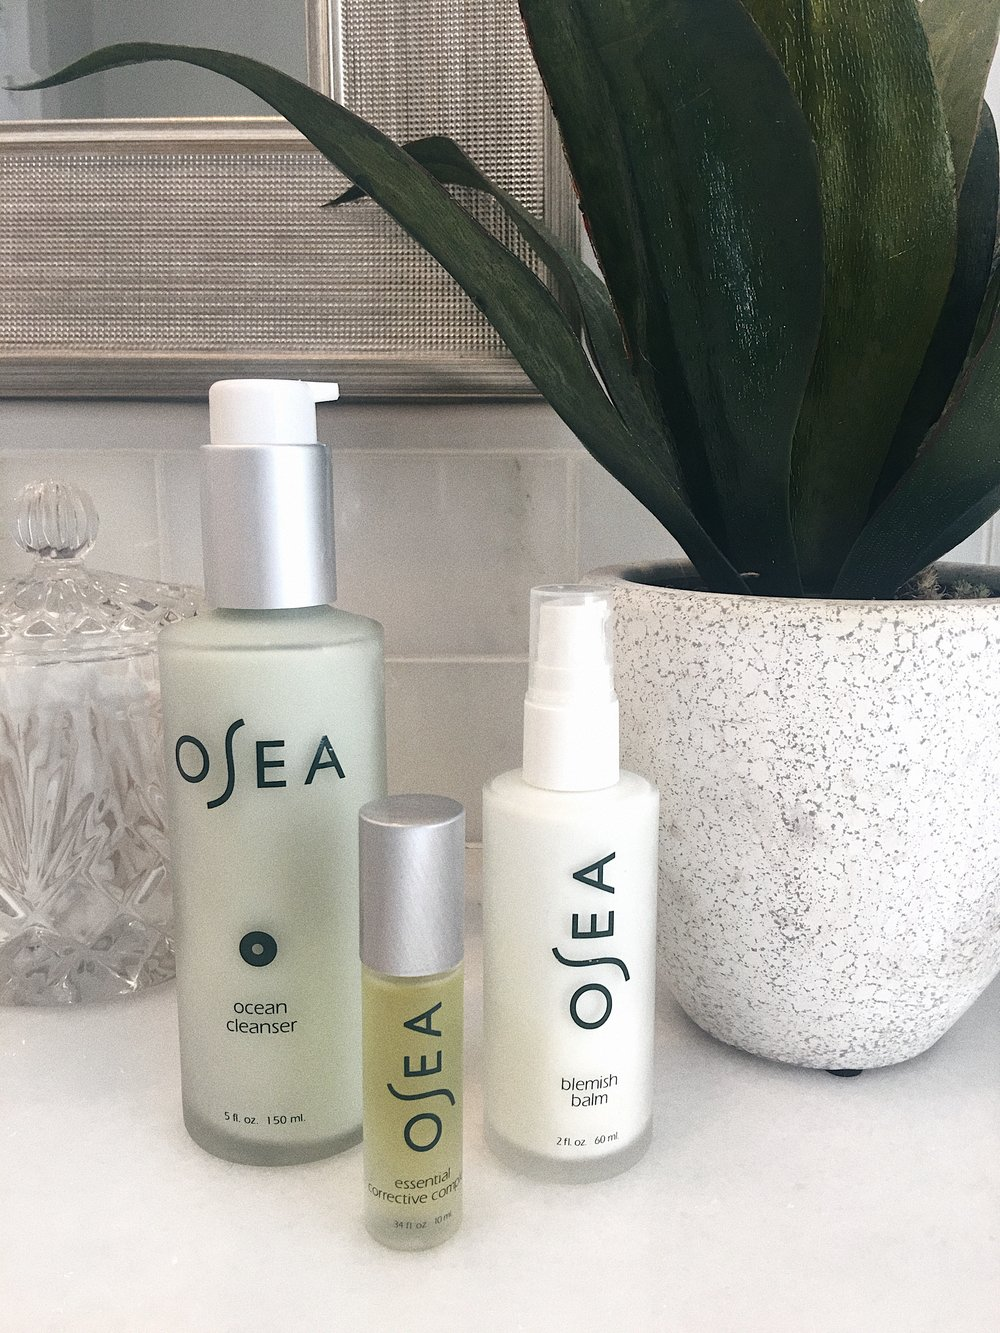 osea-malibu-skincare-my-routine-beautiful-skin-clear-blemish-control-colleen-gallagher-thesecondmuse.jpg